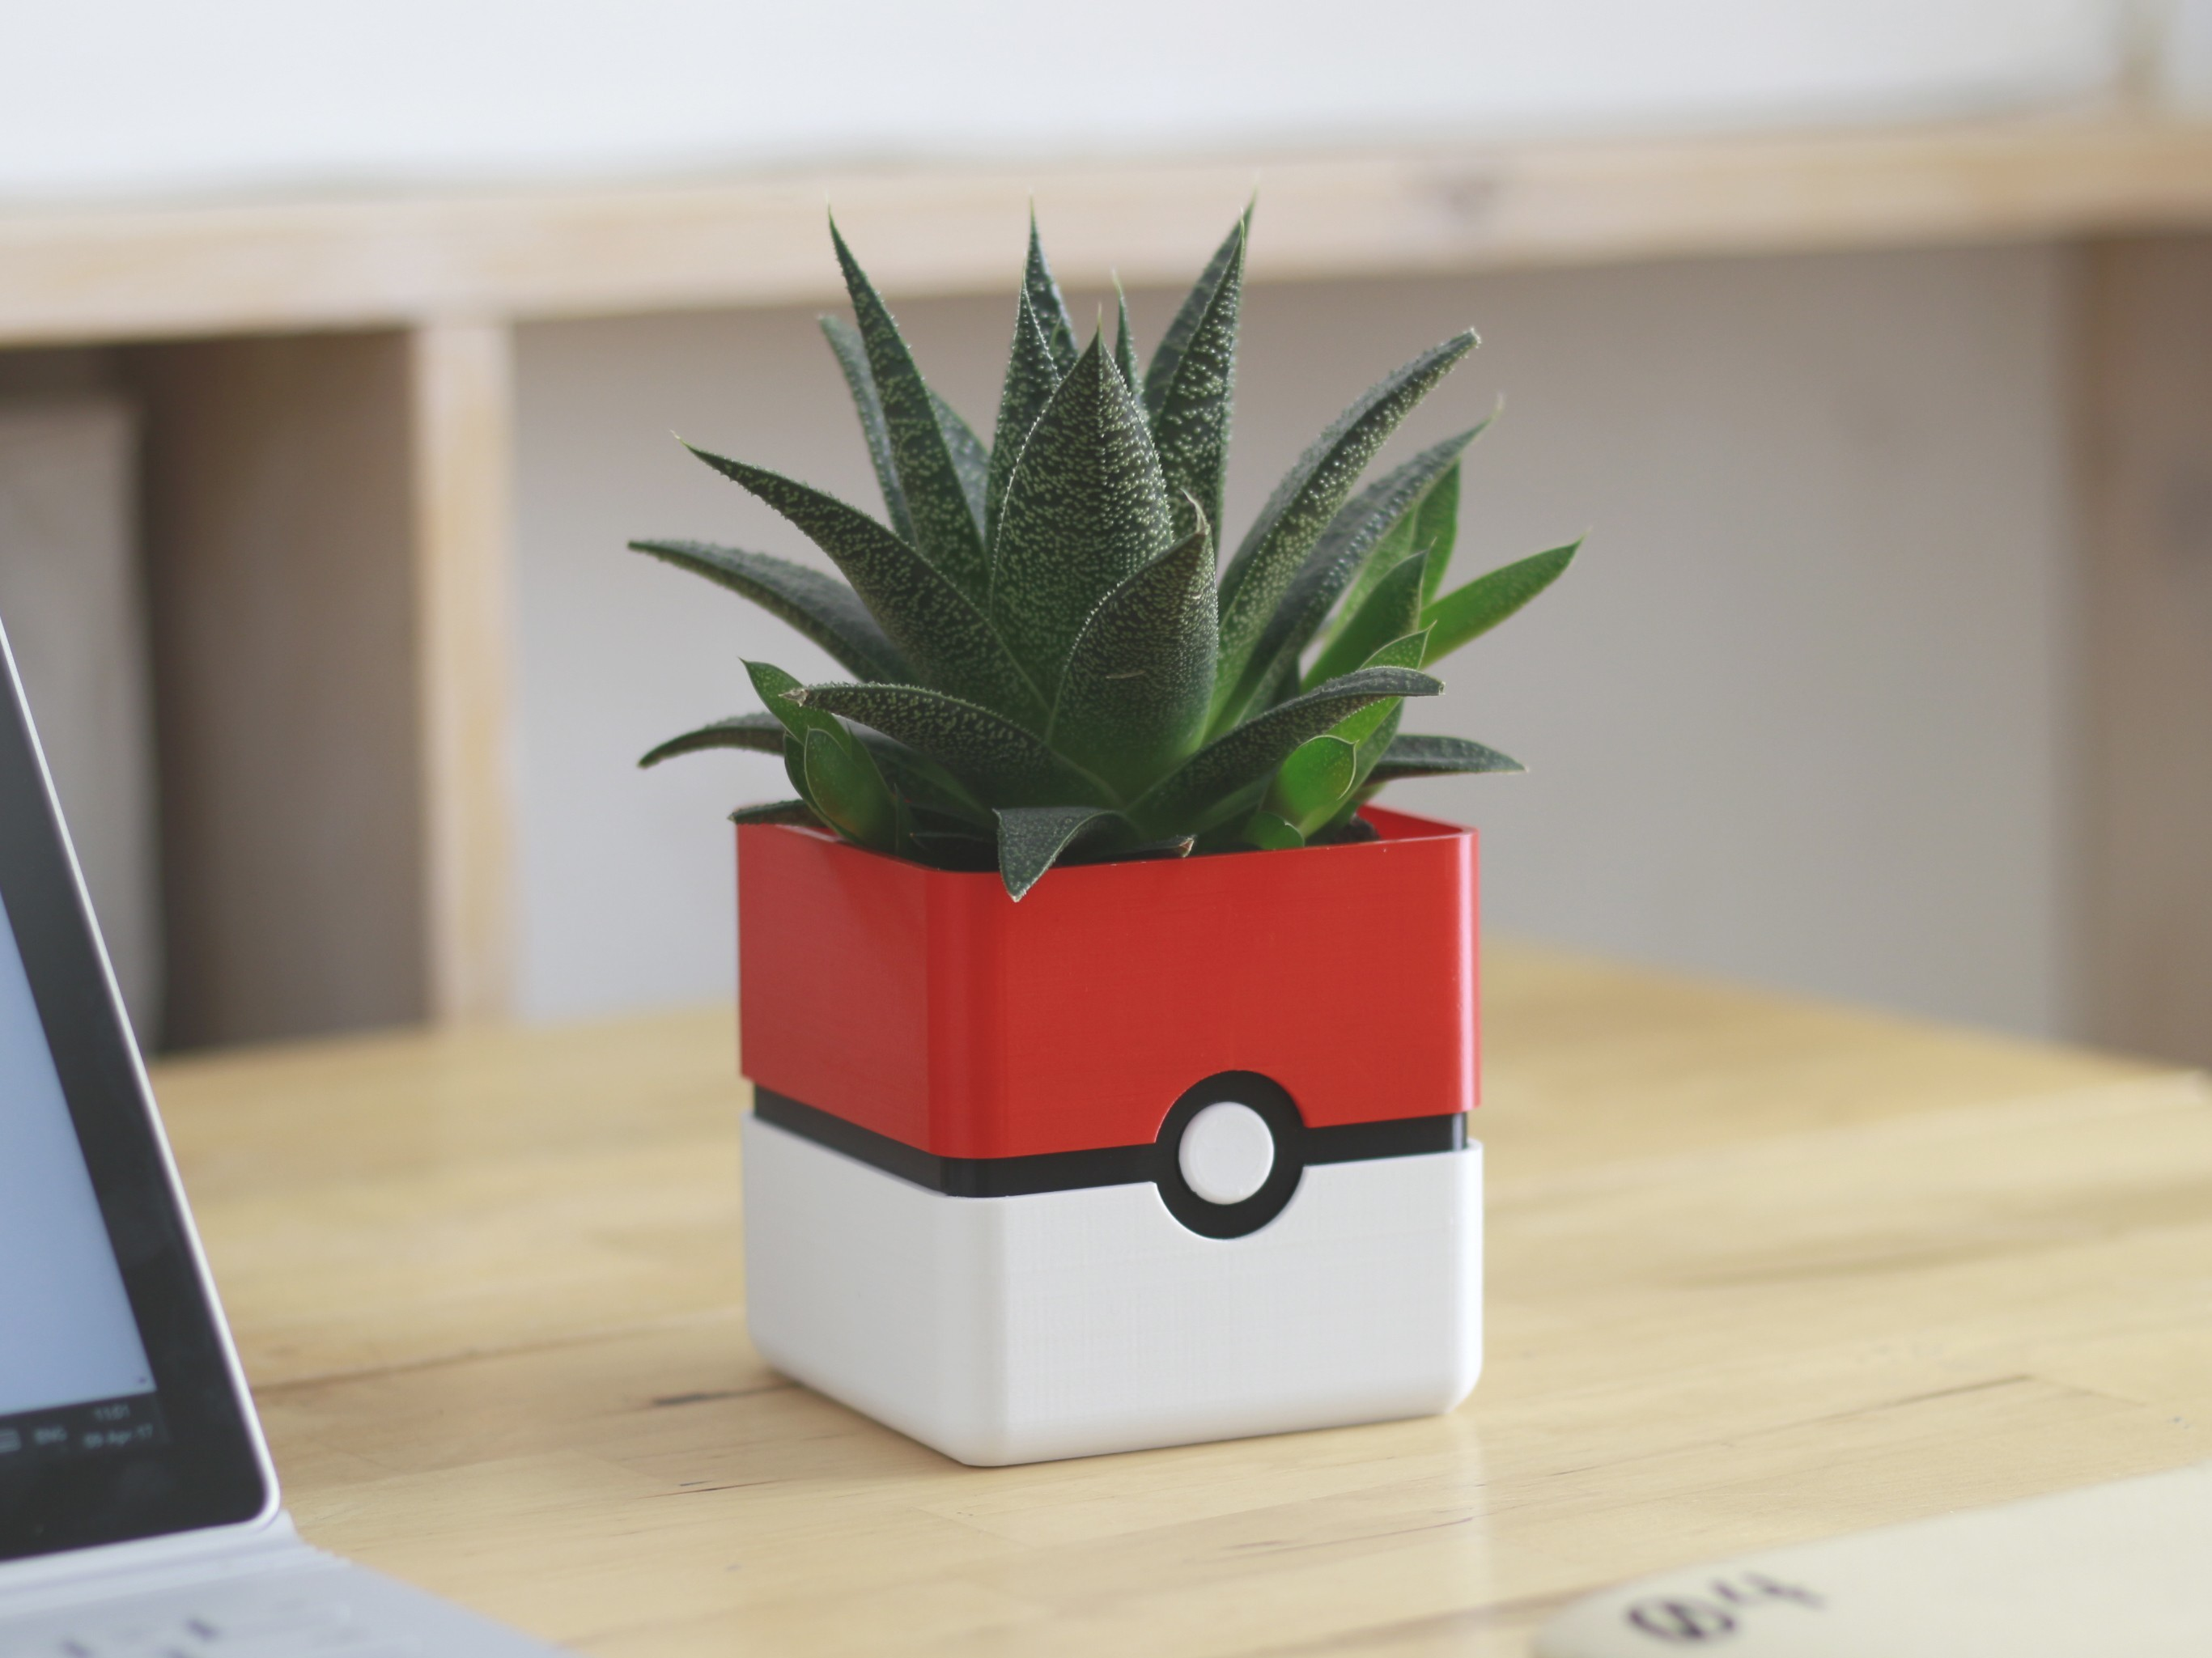 pokemon_planter_1_thingiverse.jpg Download free STL file Video Game Planter Collection • Object to 3D print, flowalistik